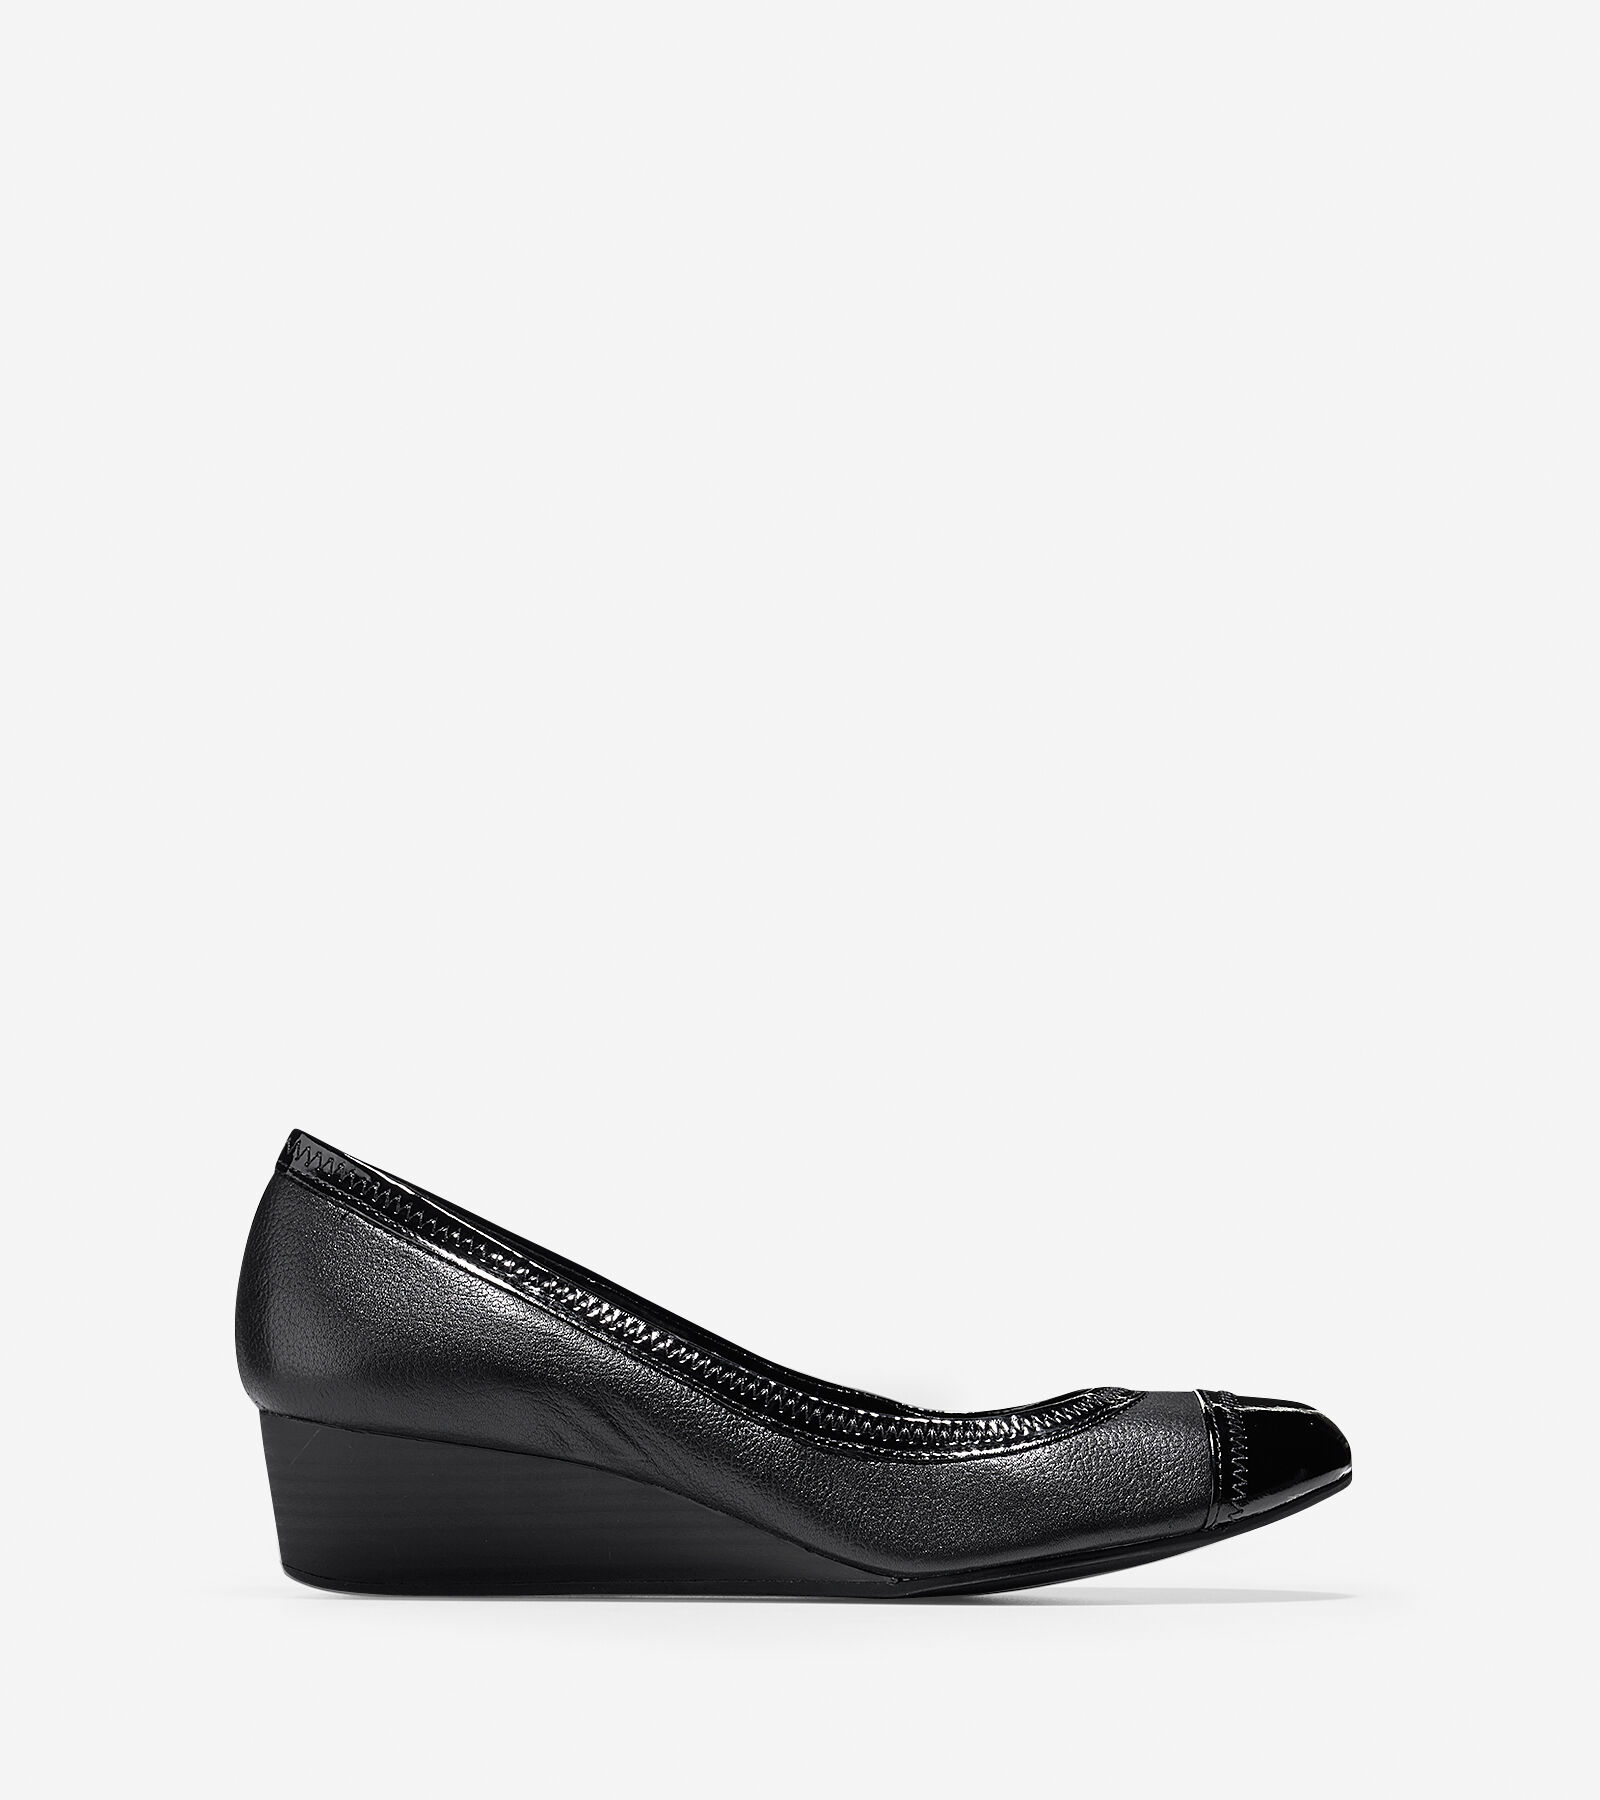 Elsie Cap Toe Wedge II Cole Haan lwjM3